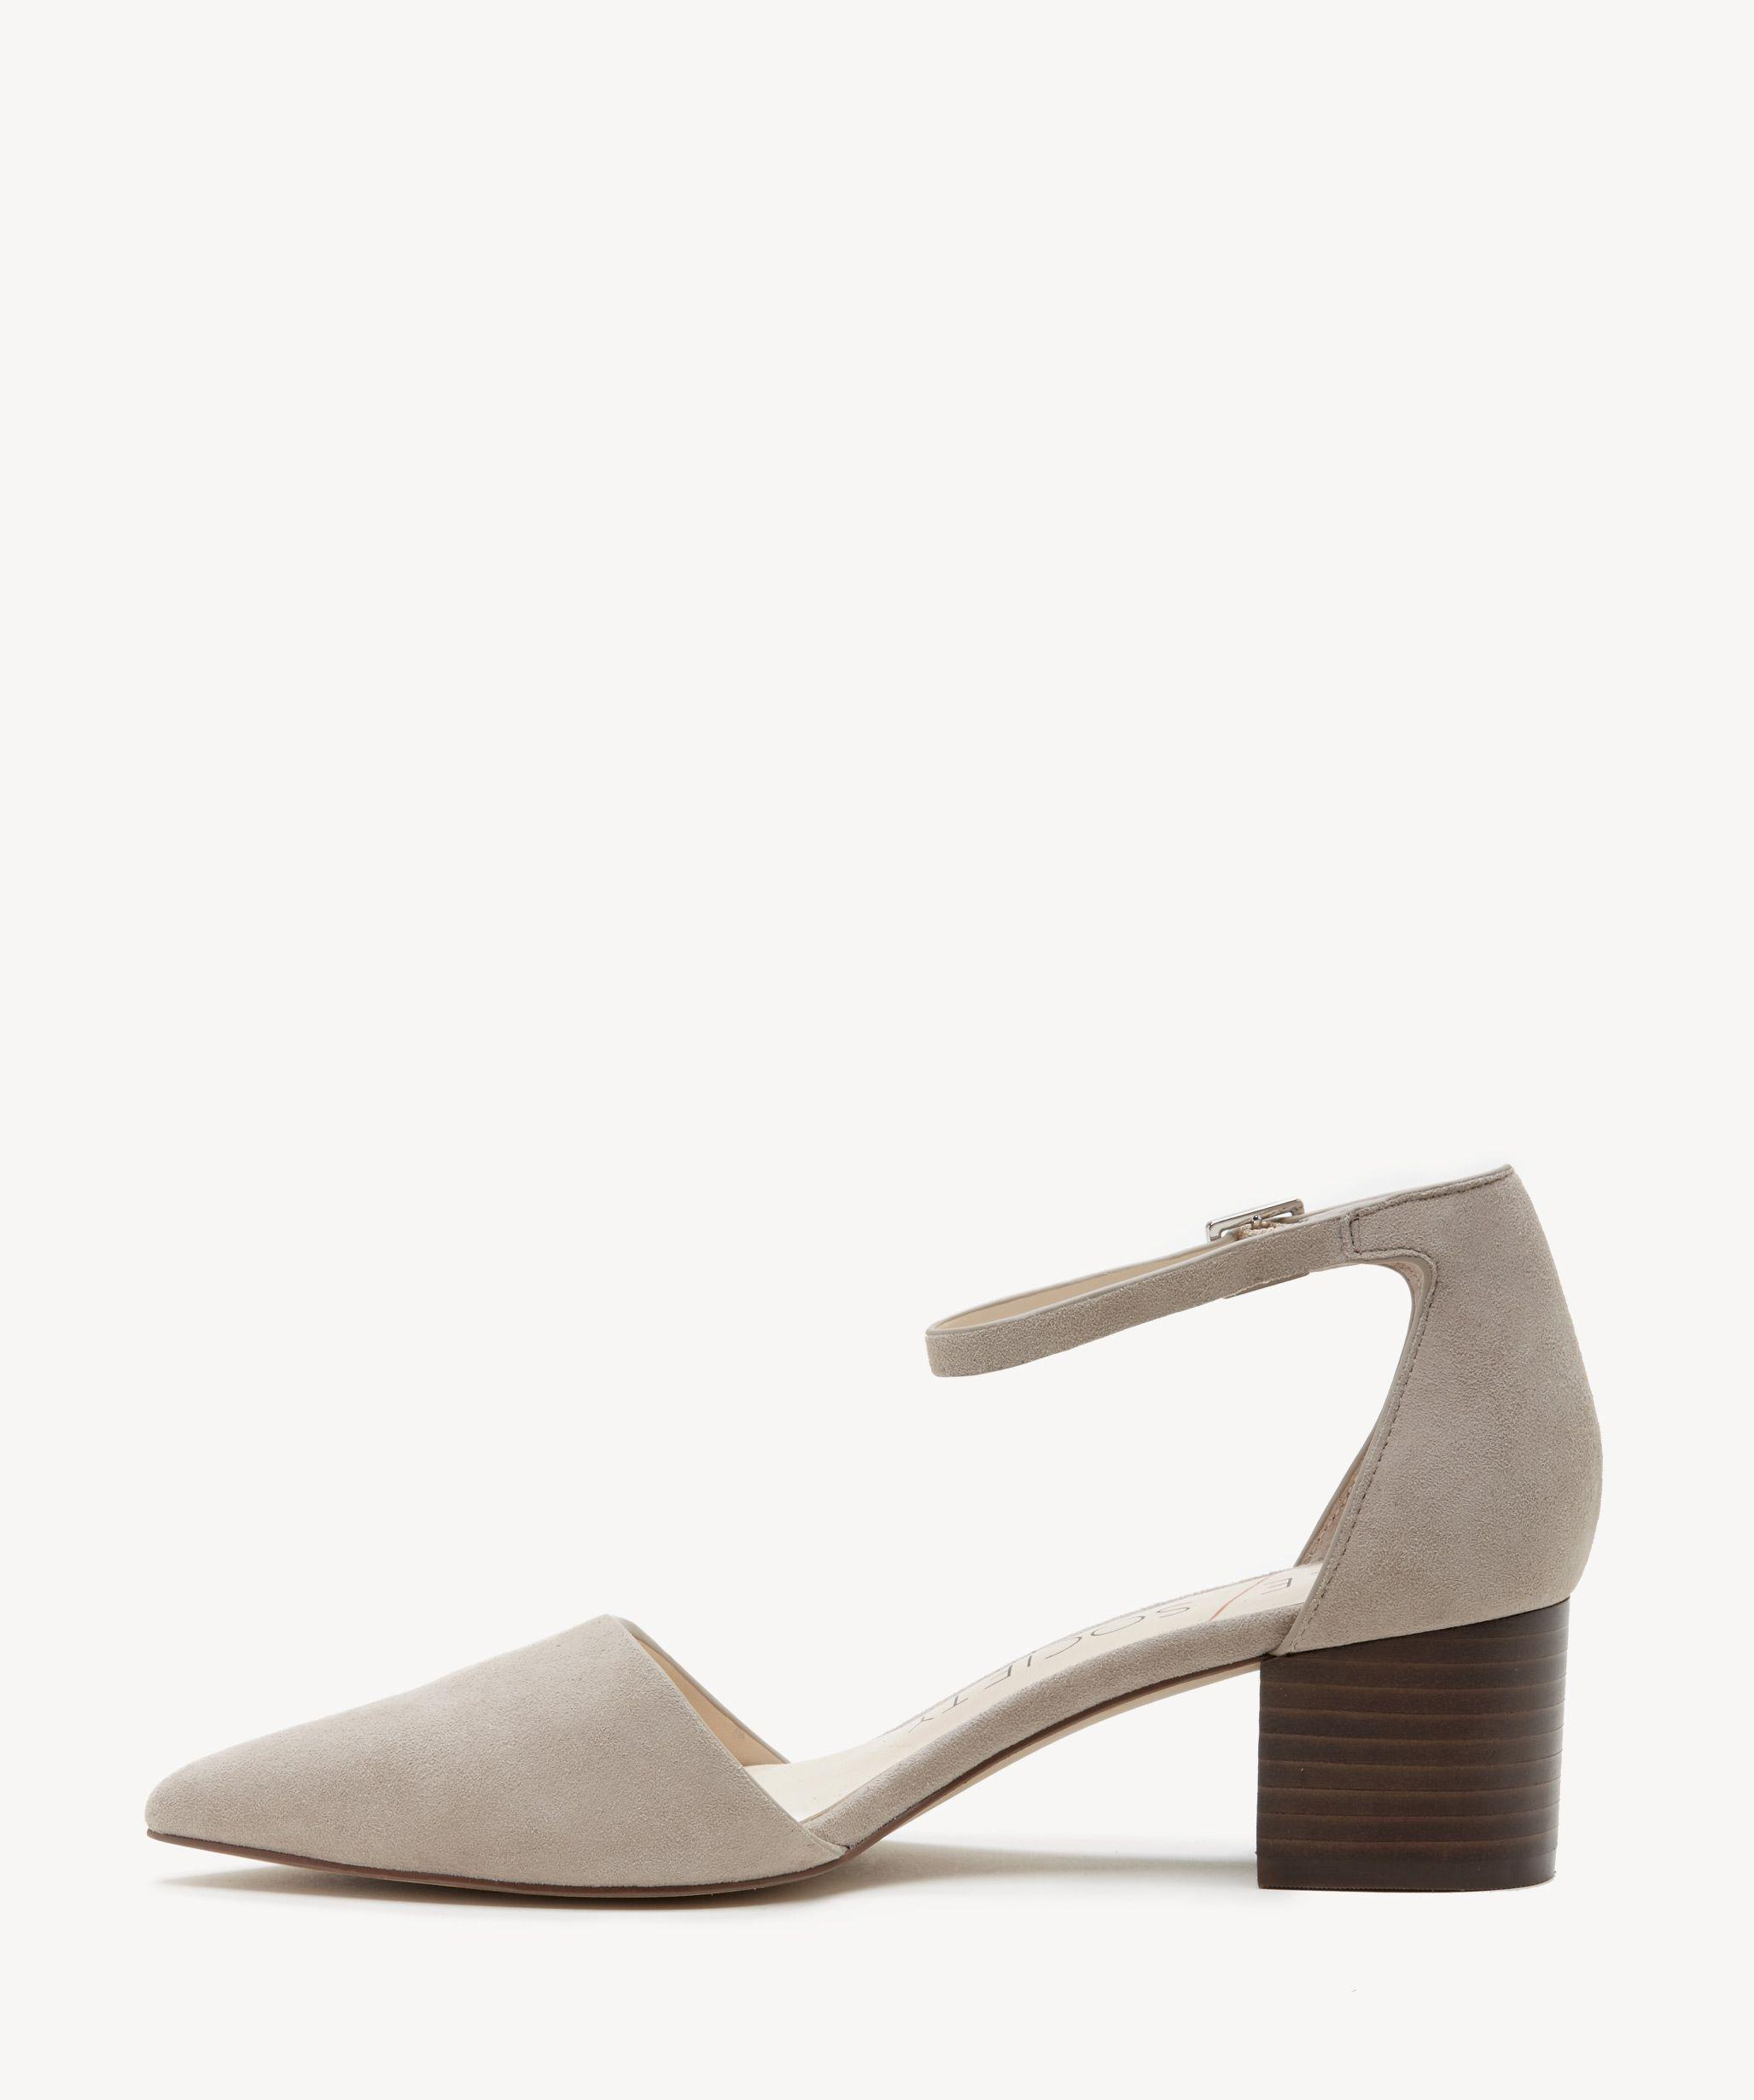 1a85fd9a061 Lyst - Sole Society Katarina Two Piece Block Heel Pump